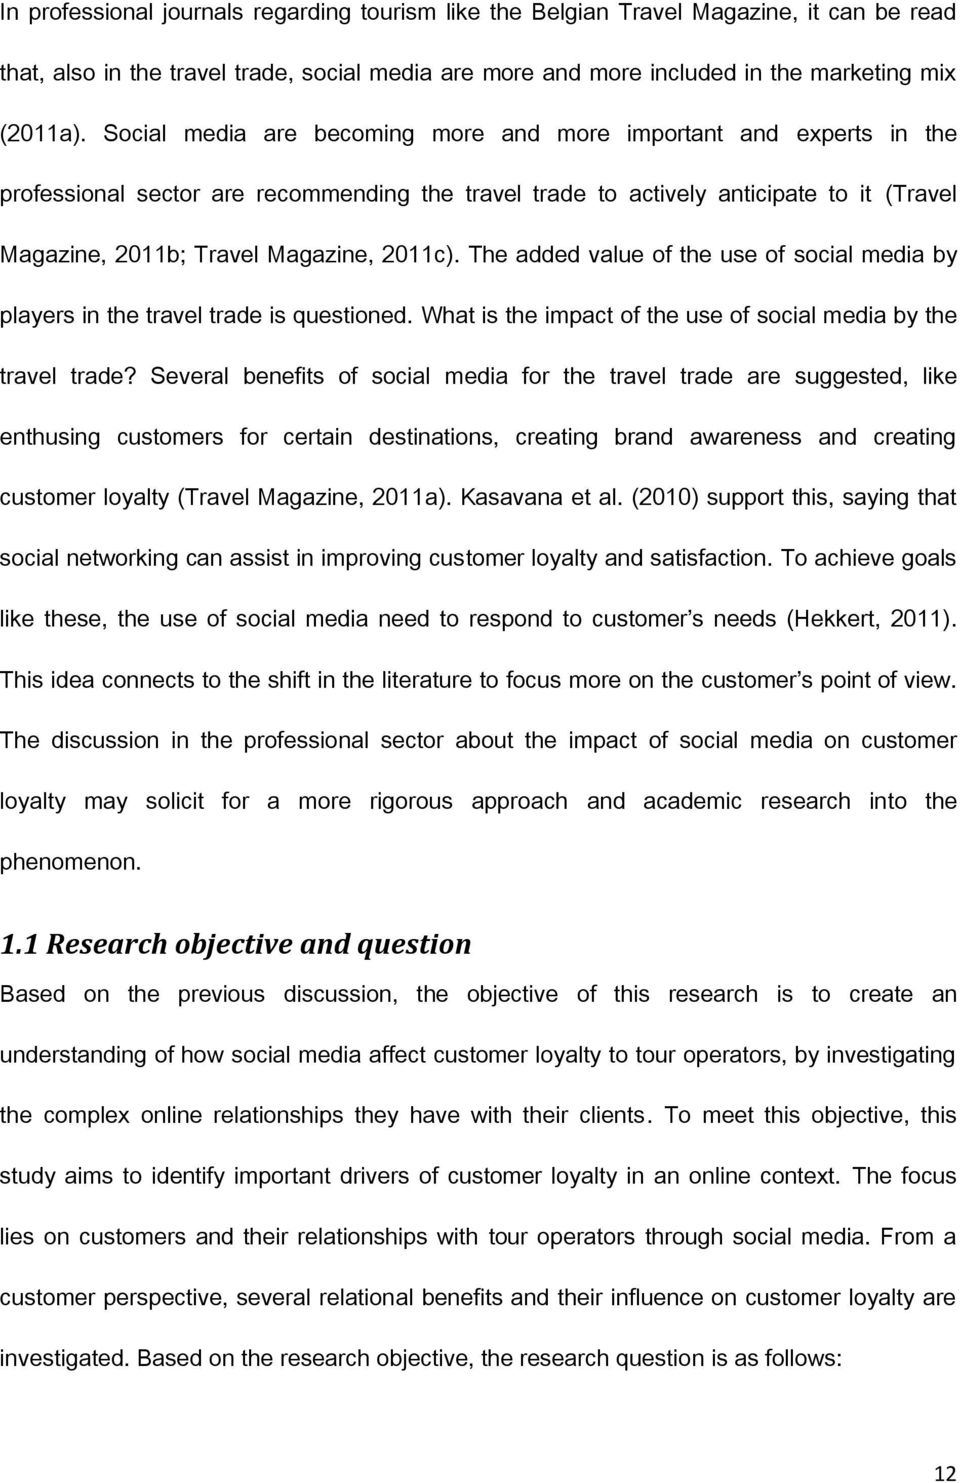 2011c). The added value of the use of social media by players in the travel trade is questioned. What is the impact of the use of social media by the travel trade?